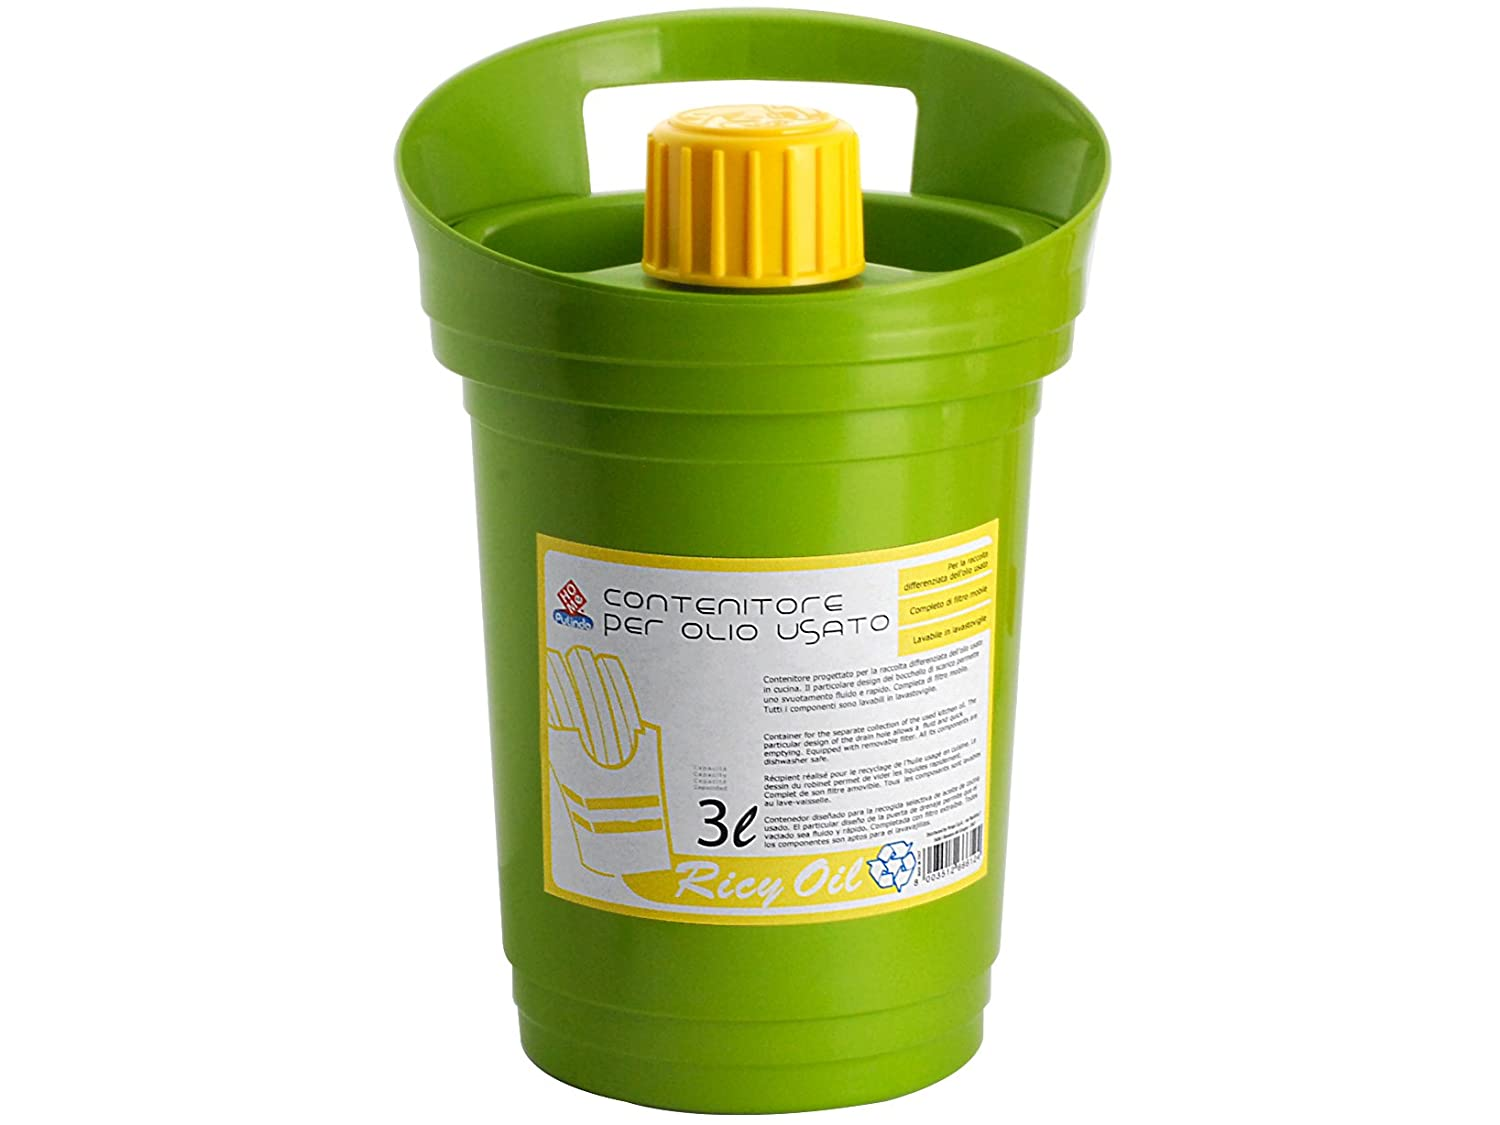 Home Ricyoil Waste Oil Container, Plastic, 3 Litres Home Pulindo 3985103